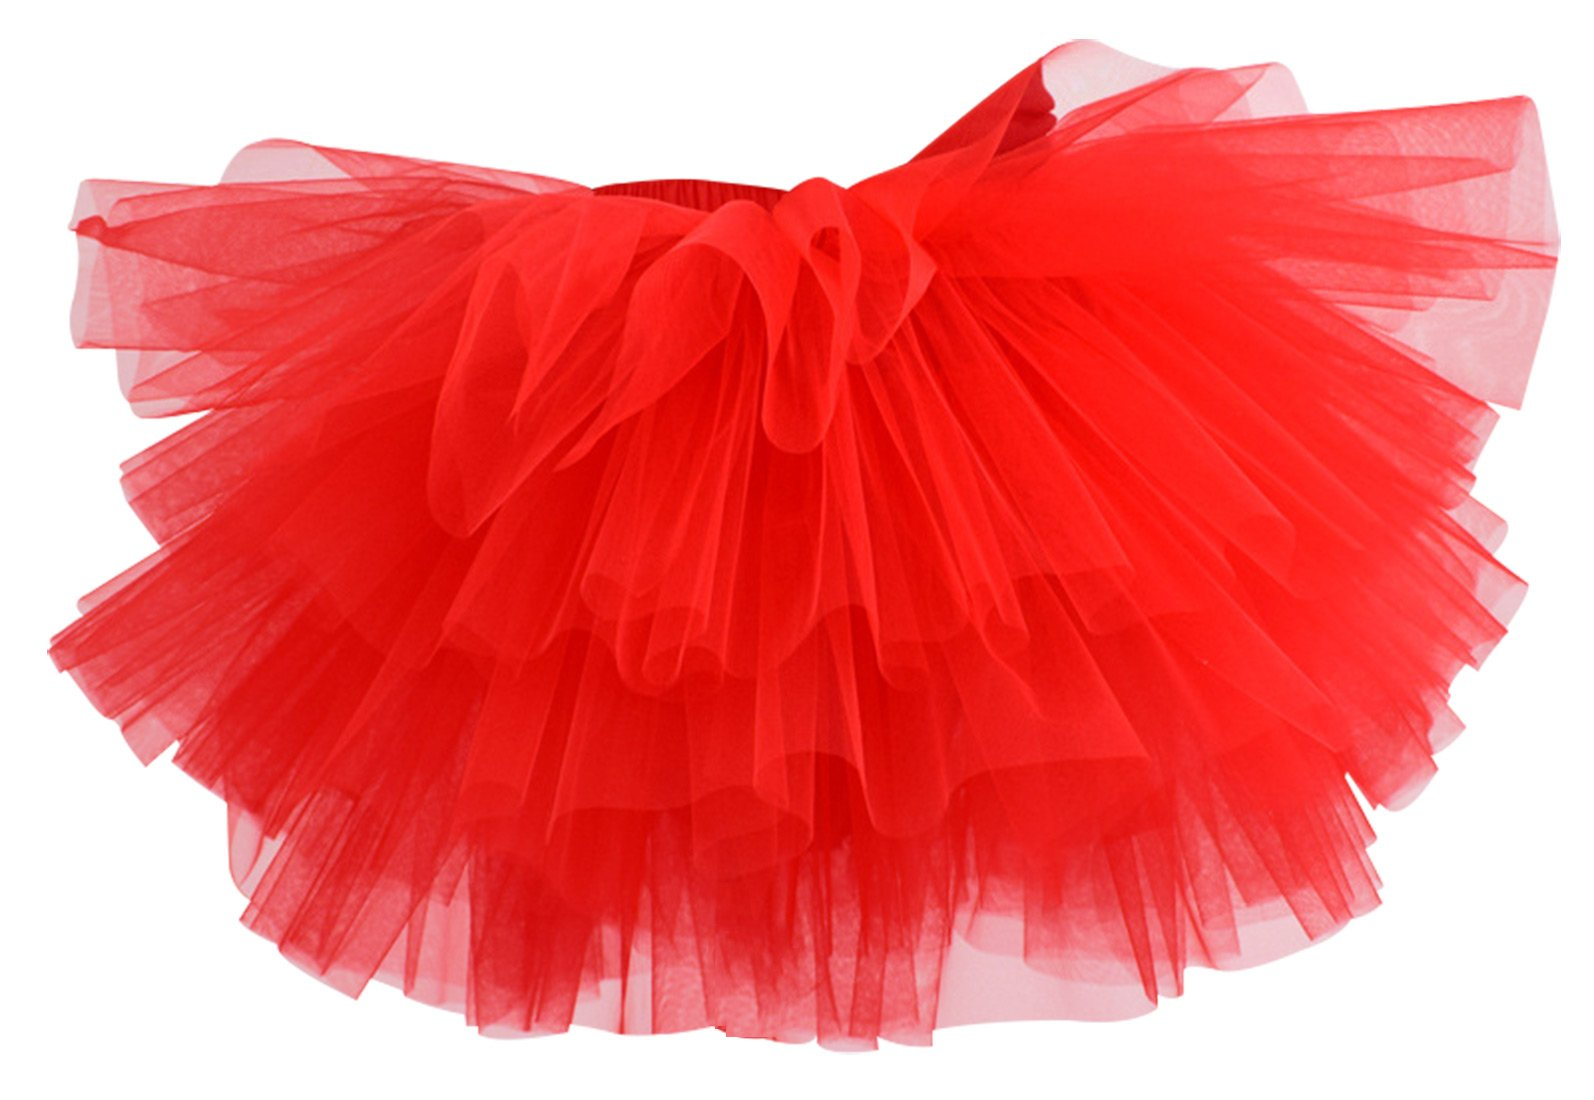 Aivtalk Girls Six Layer Skirts Multi Layered Gauze Tiered Tutu For Toddlers Casual Mini Skirt 6-7T Red